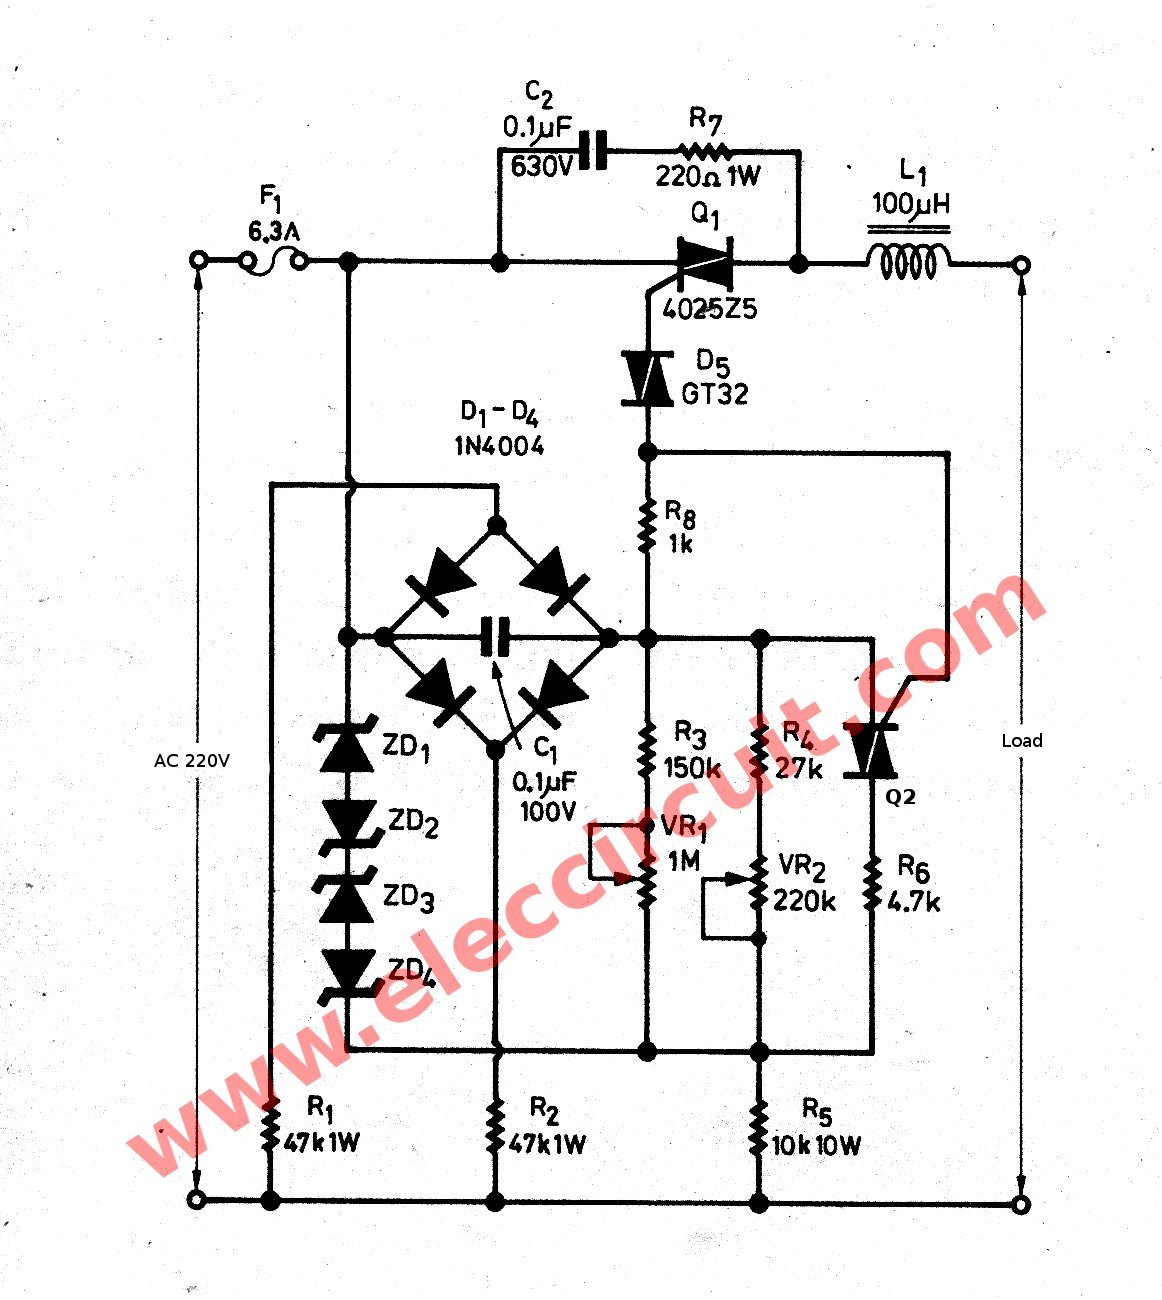 Led Ac Circuit Diagrams Elegant Tube Light Wiring Diagram Also Flasher By Ic 4011 Schematic Of The Watts Dimmer For Inductor Load With